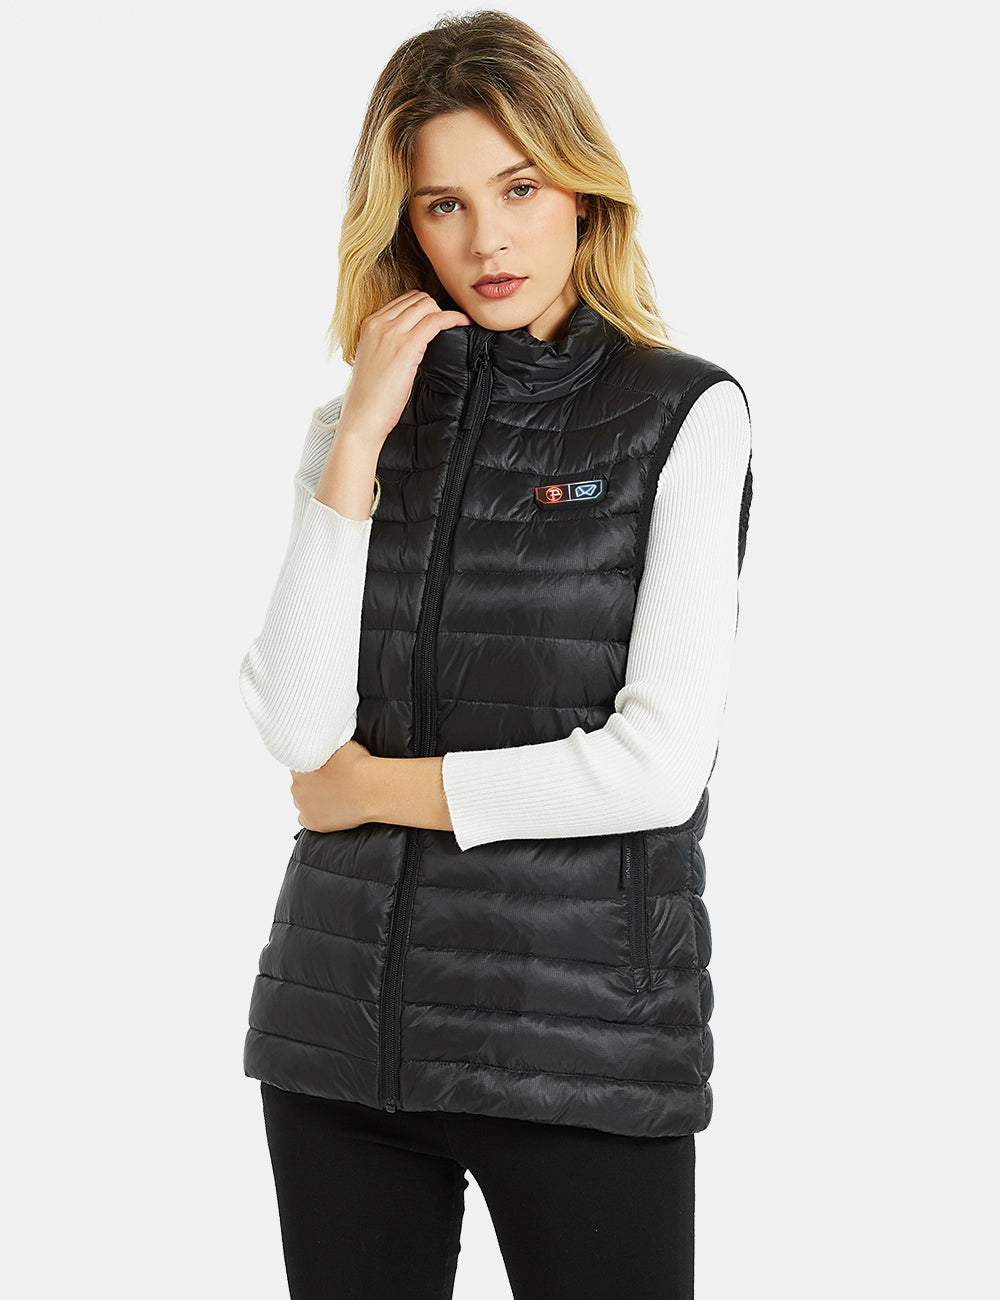 Womens 4 Zone Down Heated Vest with Battery Kit